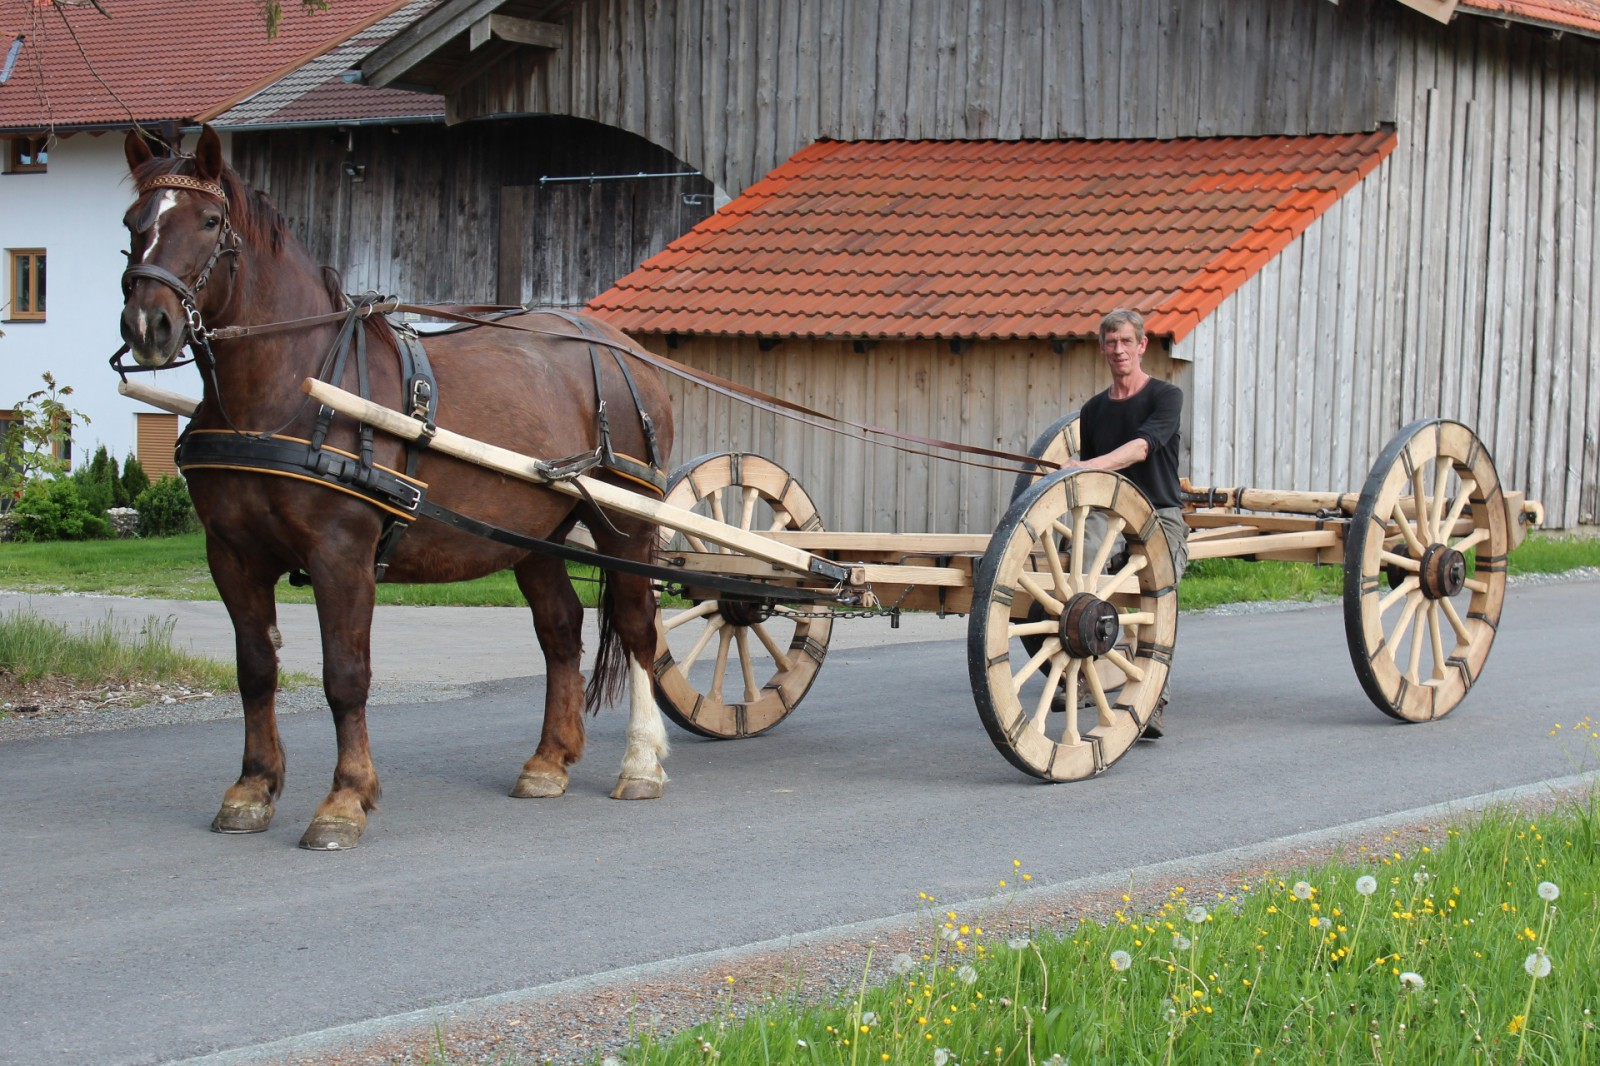 About Wheelwright / Coach Builder Andreas Hauck - and the press and media about the workshop wheels and wagons